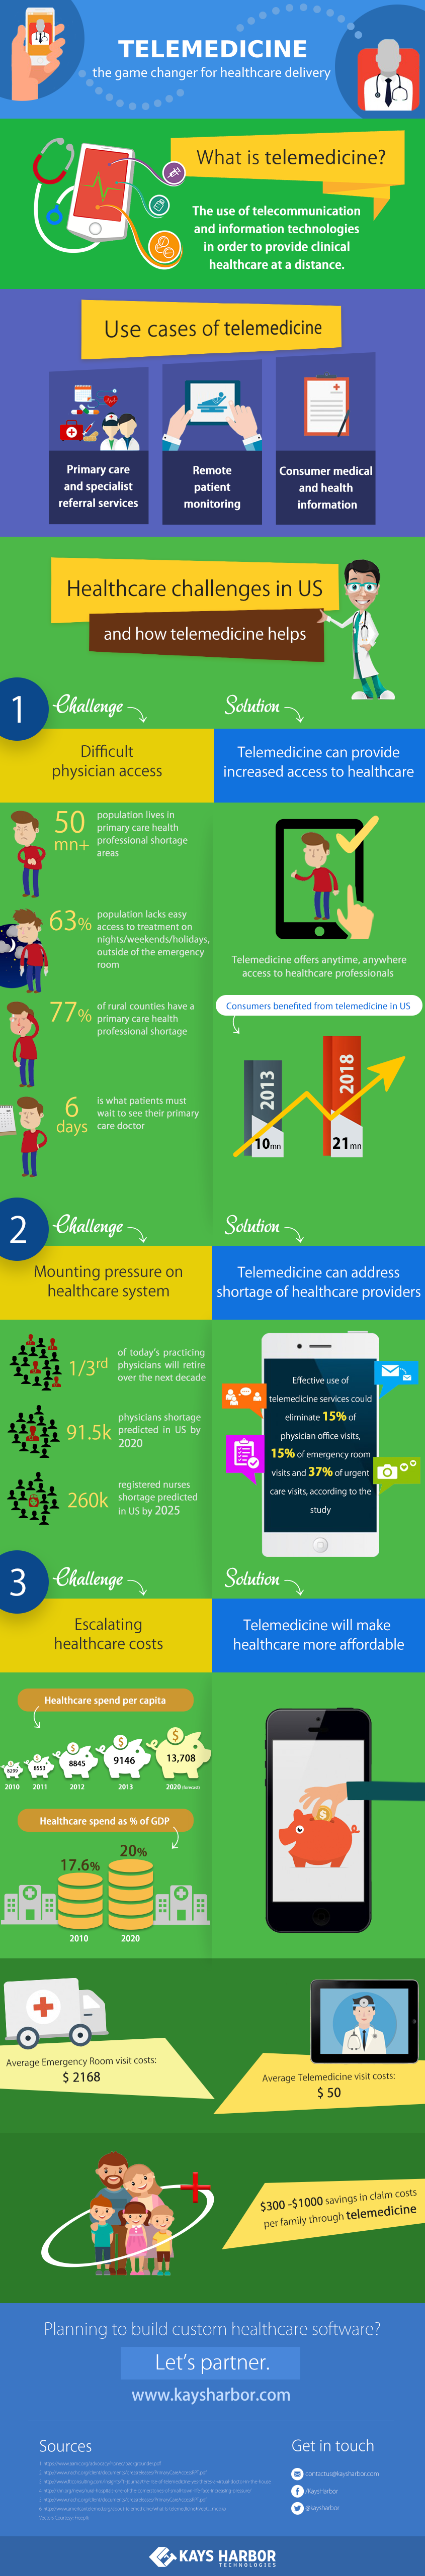 Telemedicine game changer infographic